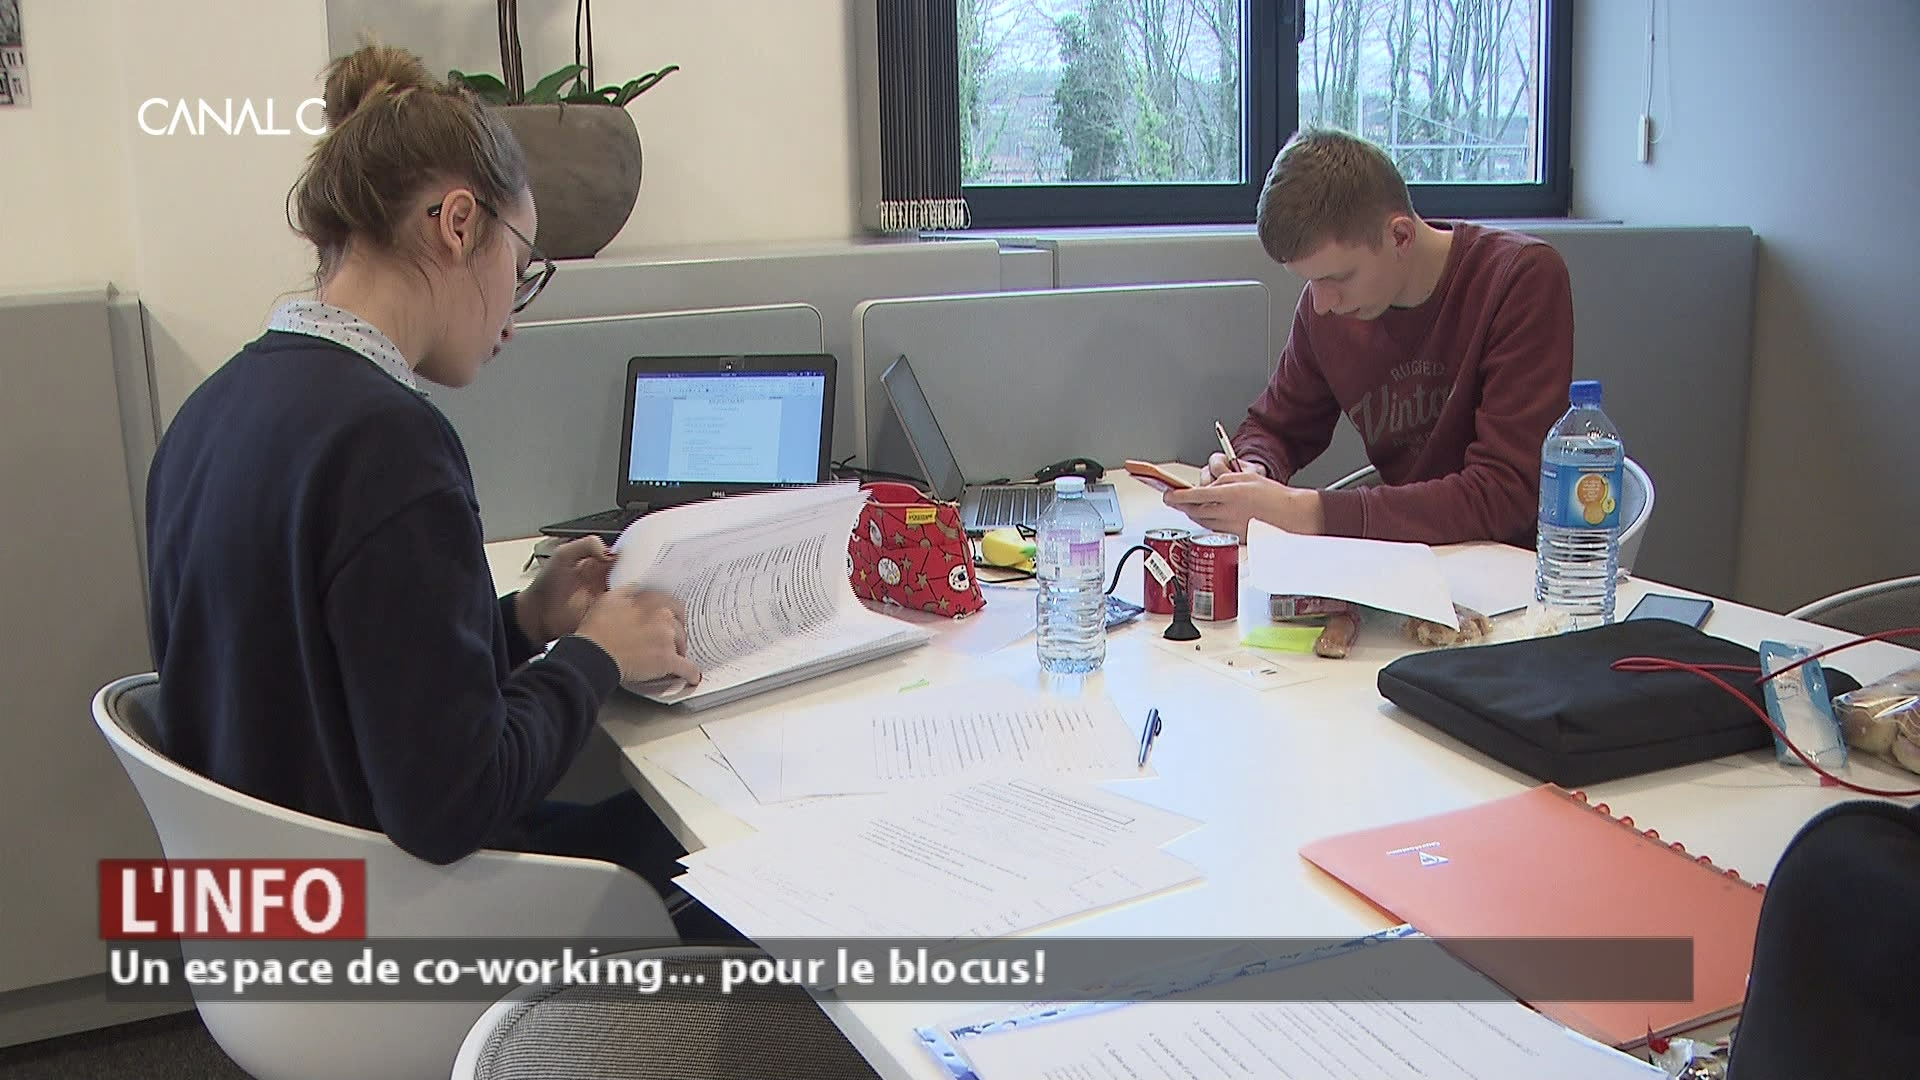 Blocus: le Centre de co-working REGUS accueille les étudiants